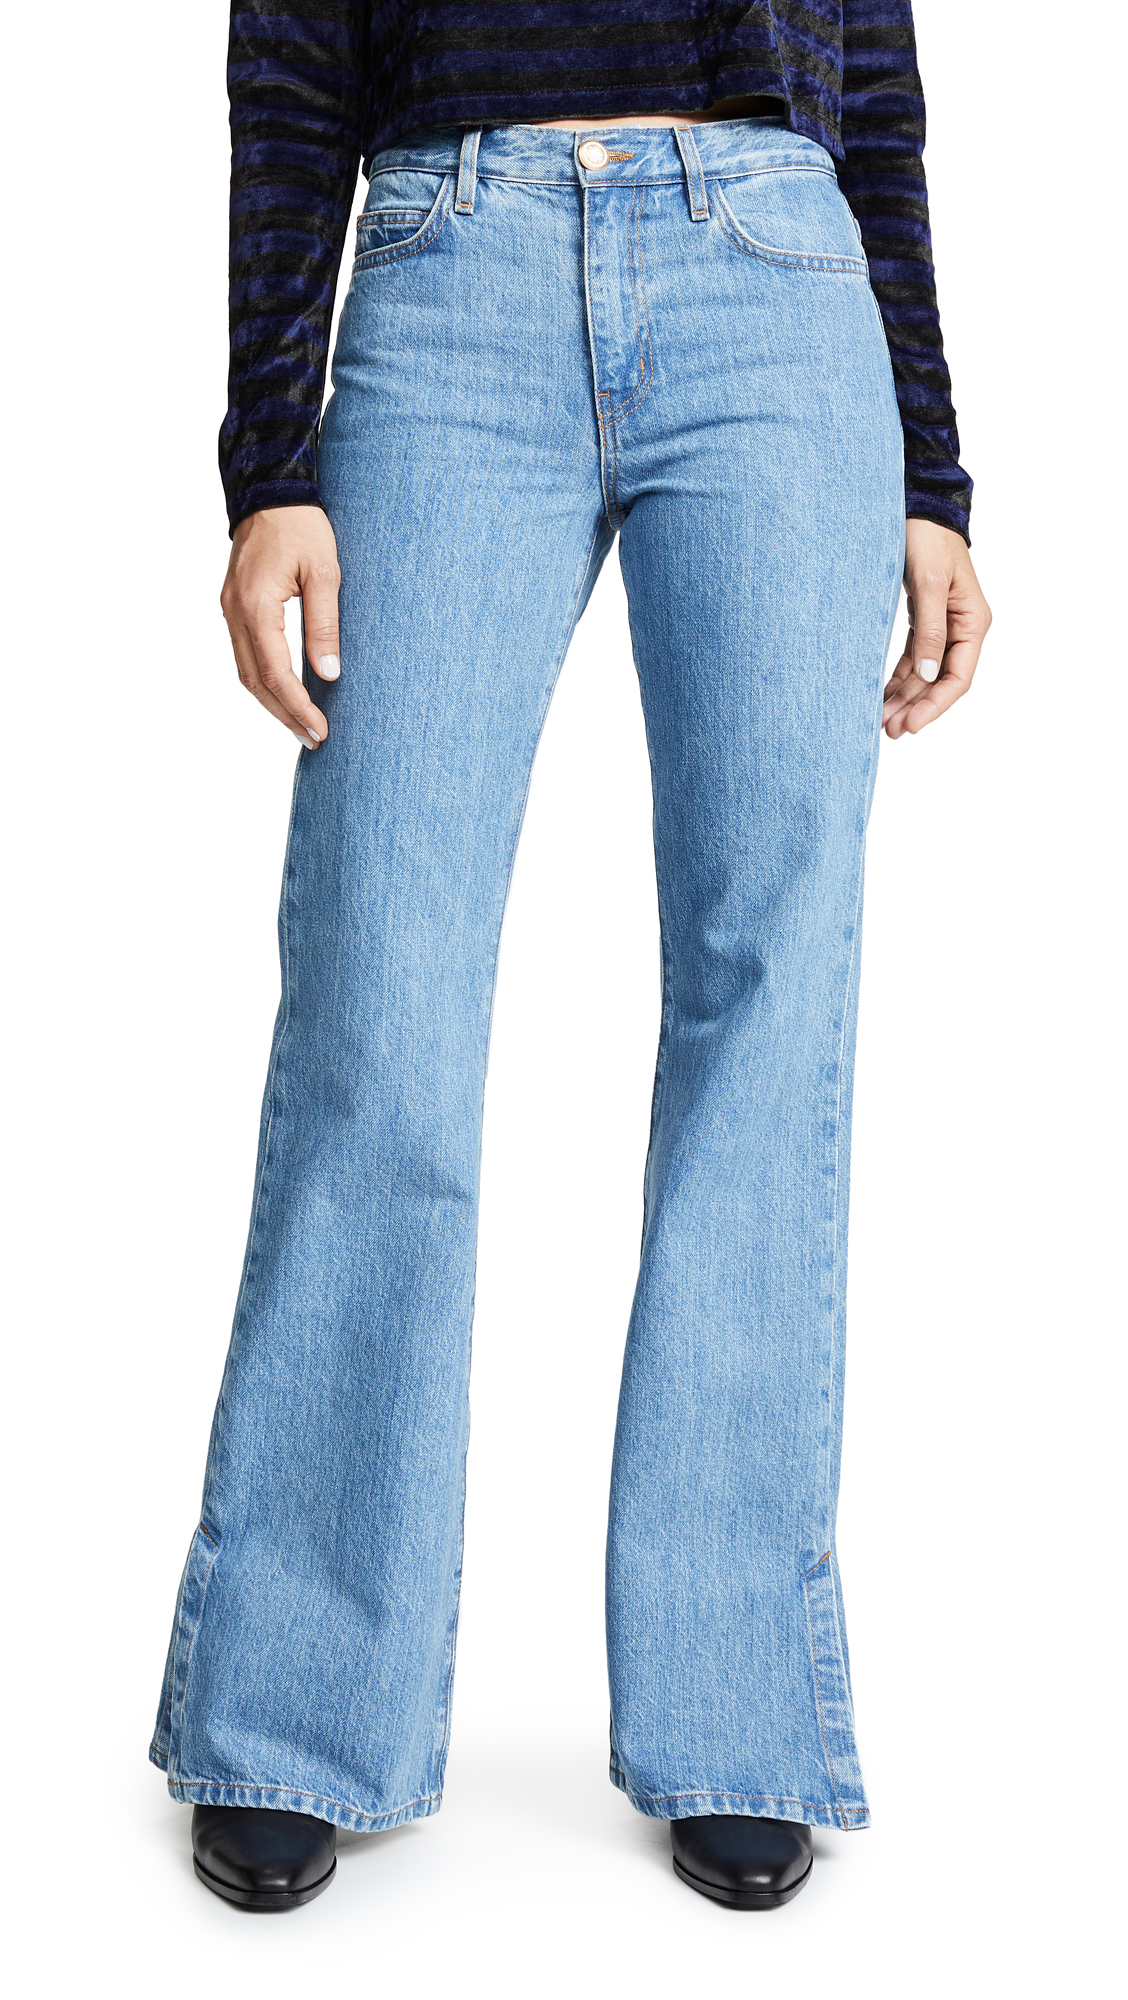 ei8htdreams Highrise Wide Flare Jeans with Slit In Light Wash